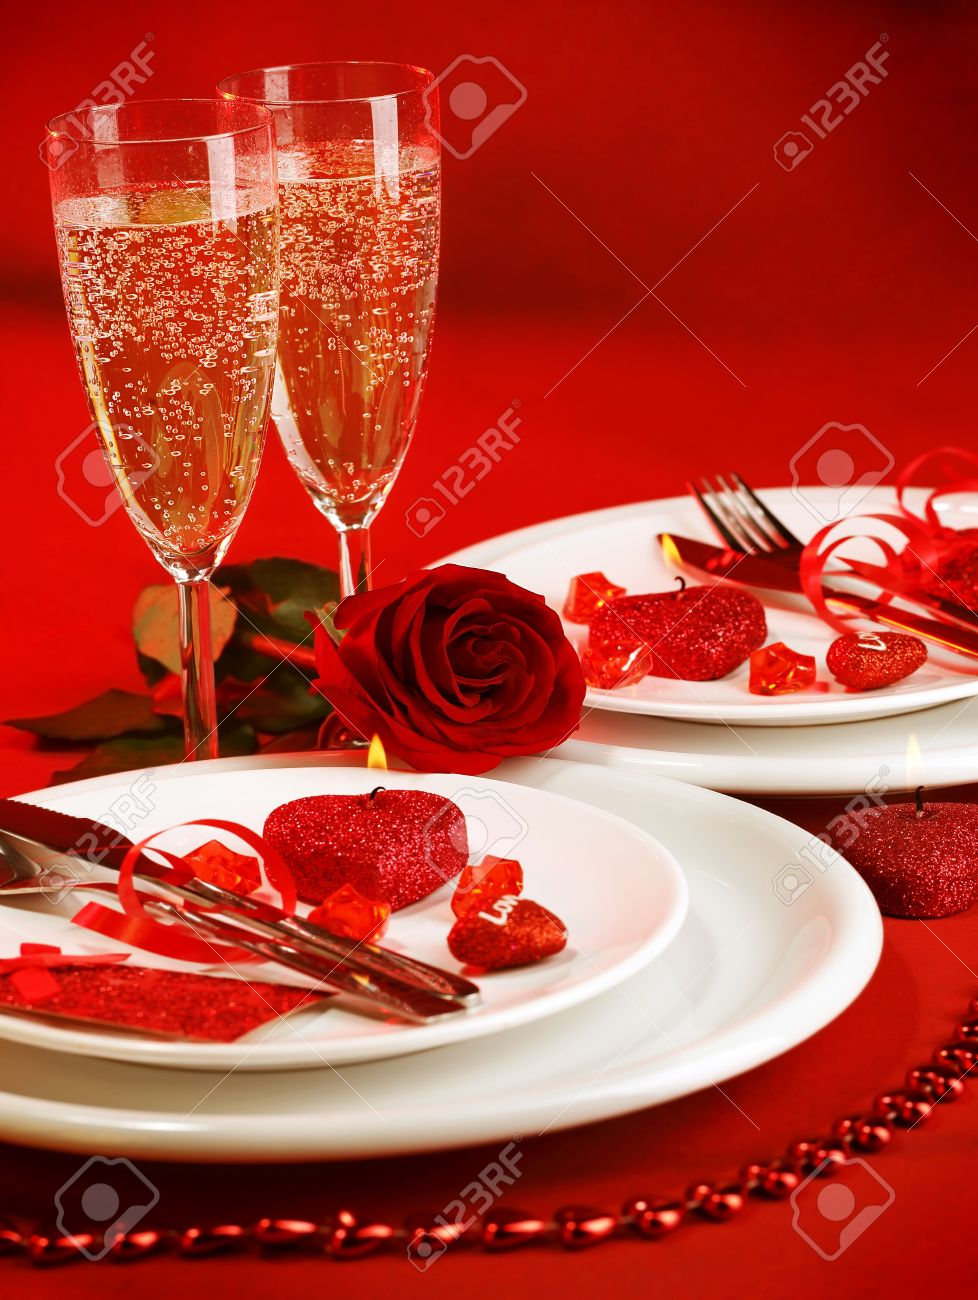 Romantic dinner table decoration - Picture Of Luxury Table Setting Romantic Dinner White Festive Utensil Served With Silverware And